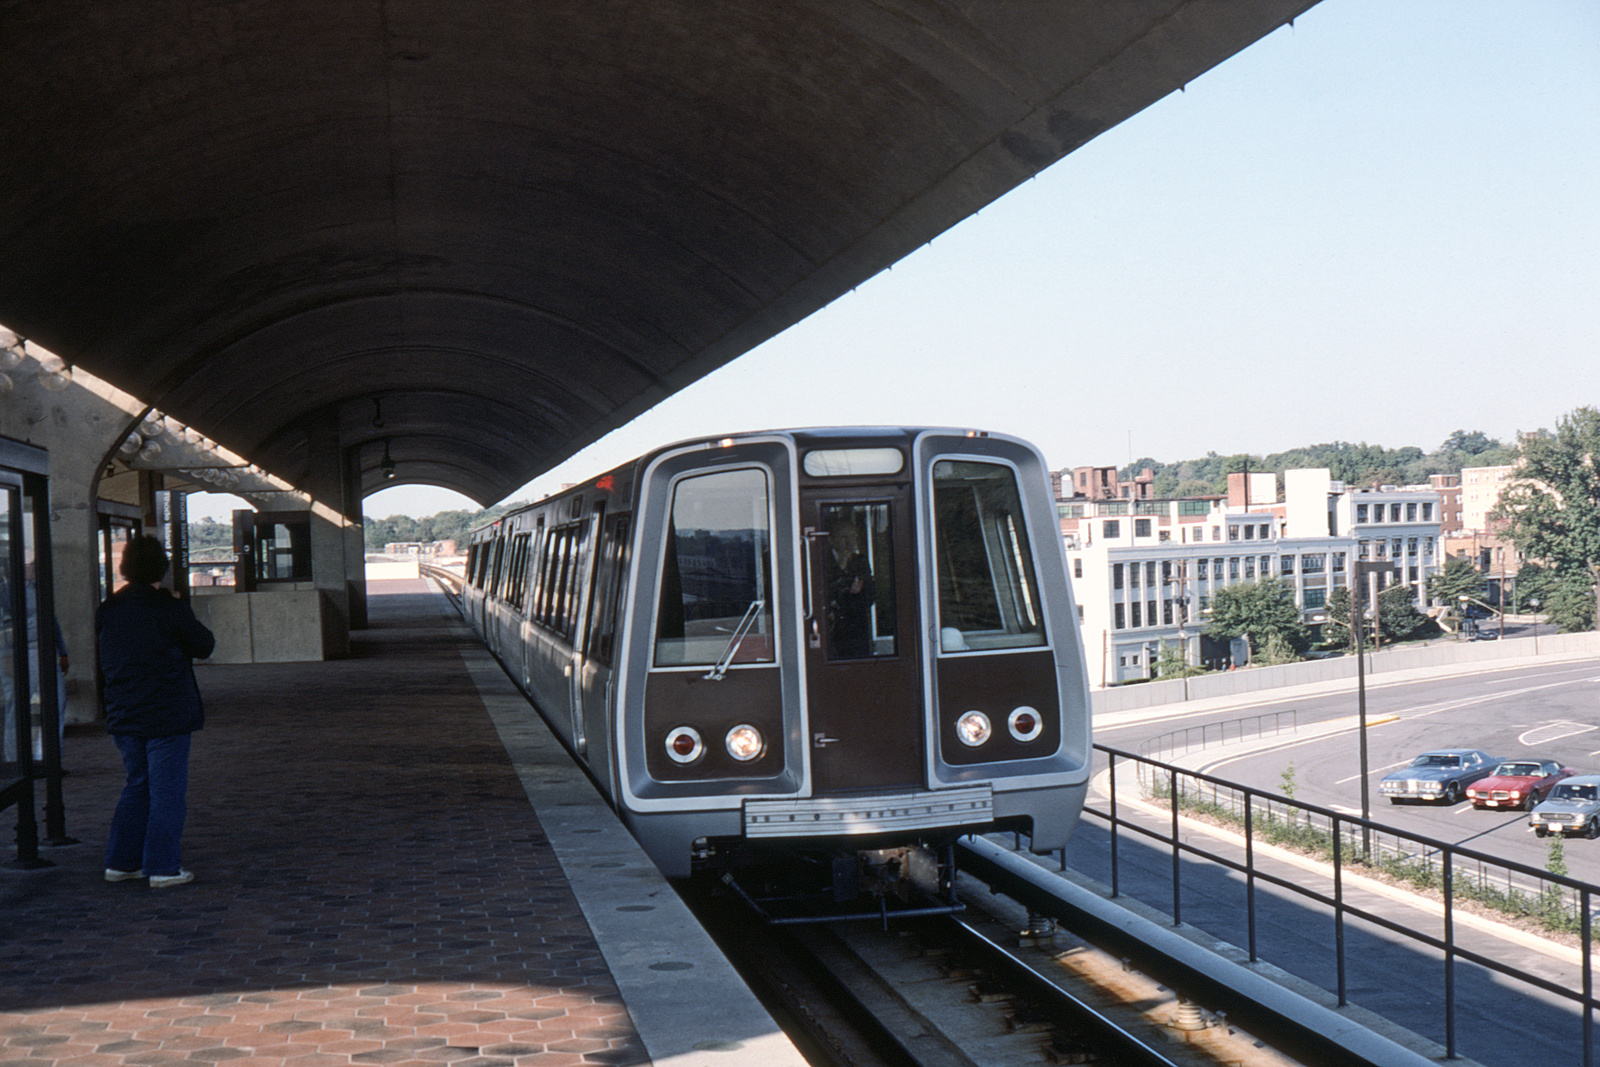 (356k, 1044x707)<br><b>Country:</b> United States<br><b>City:</b> Washington, D.C.<br><b>System:</b> Washington Metro (WMATA)<br><b>Line:</b> WMATA Red Line<br><b>Location:</b> Rhode Island Avenue <br><b>Collection of:</b> David Pirmann<br><b>Date:</b> 4/1976<br><b>Viewed (this week/total):</b> 4 / 4901